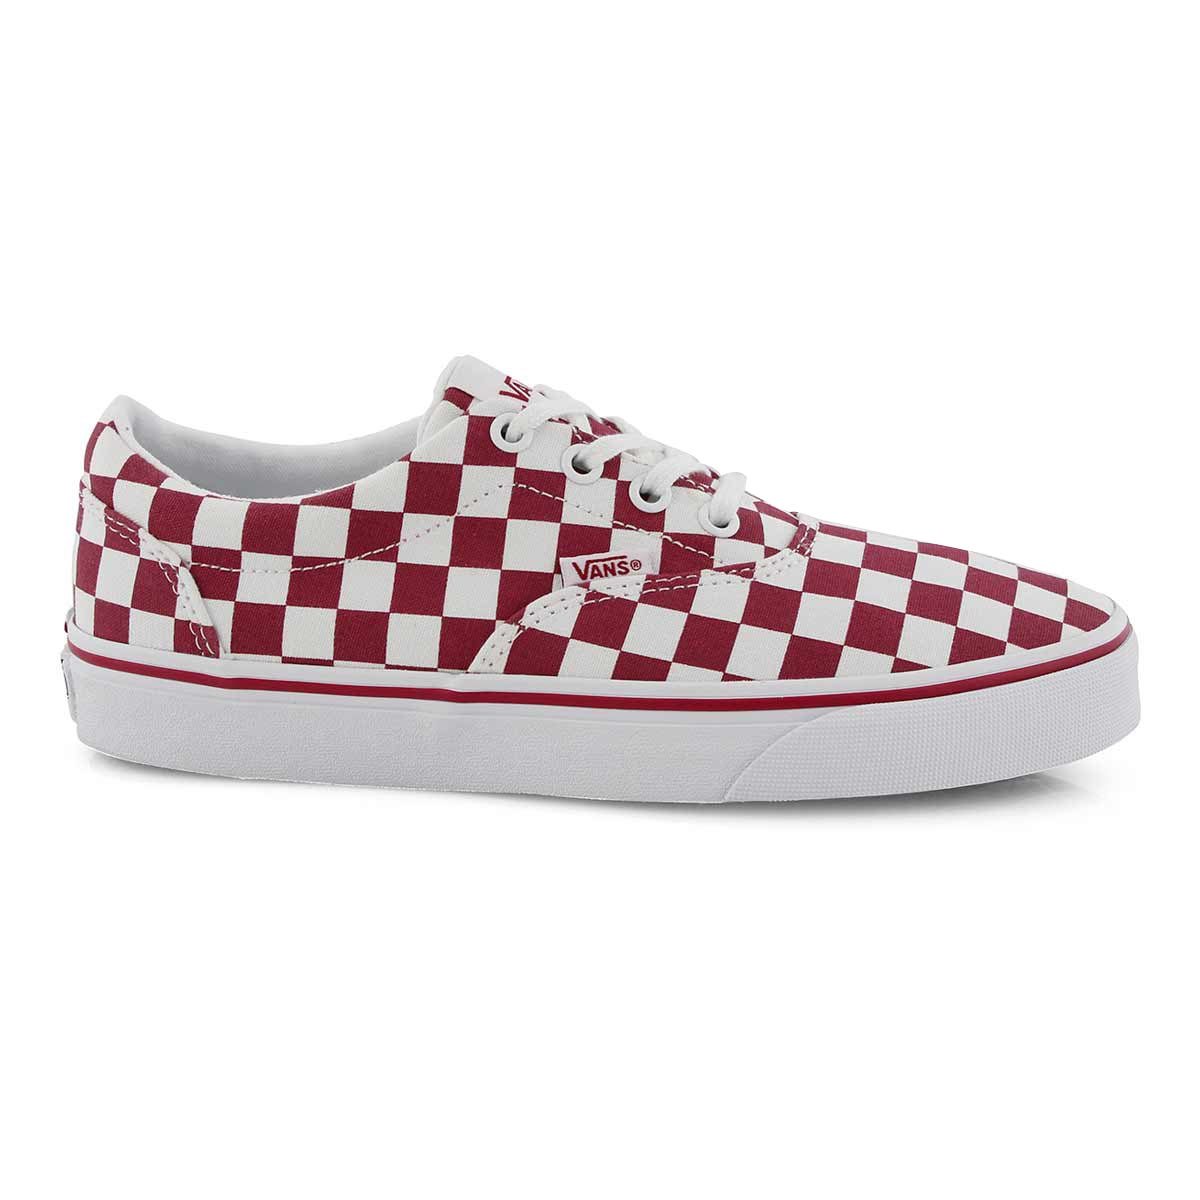 Women's DOHENY cerise/wht checkered sneakers